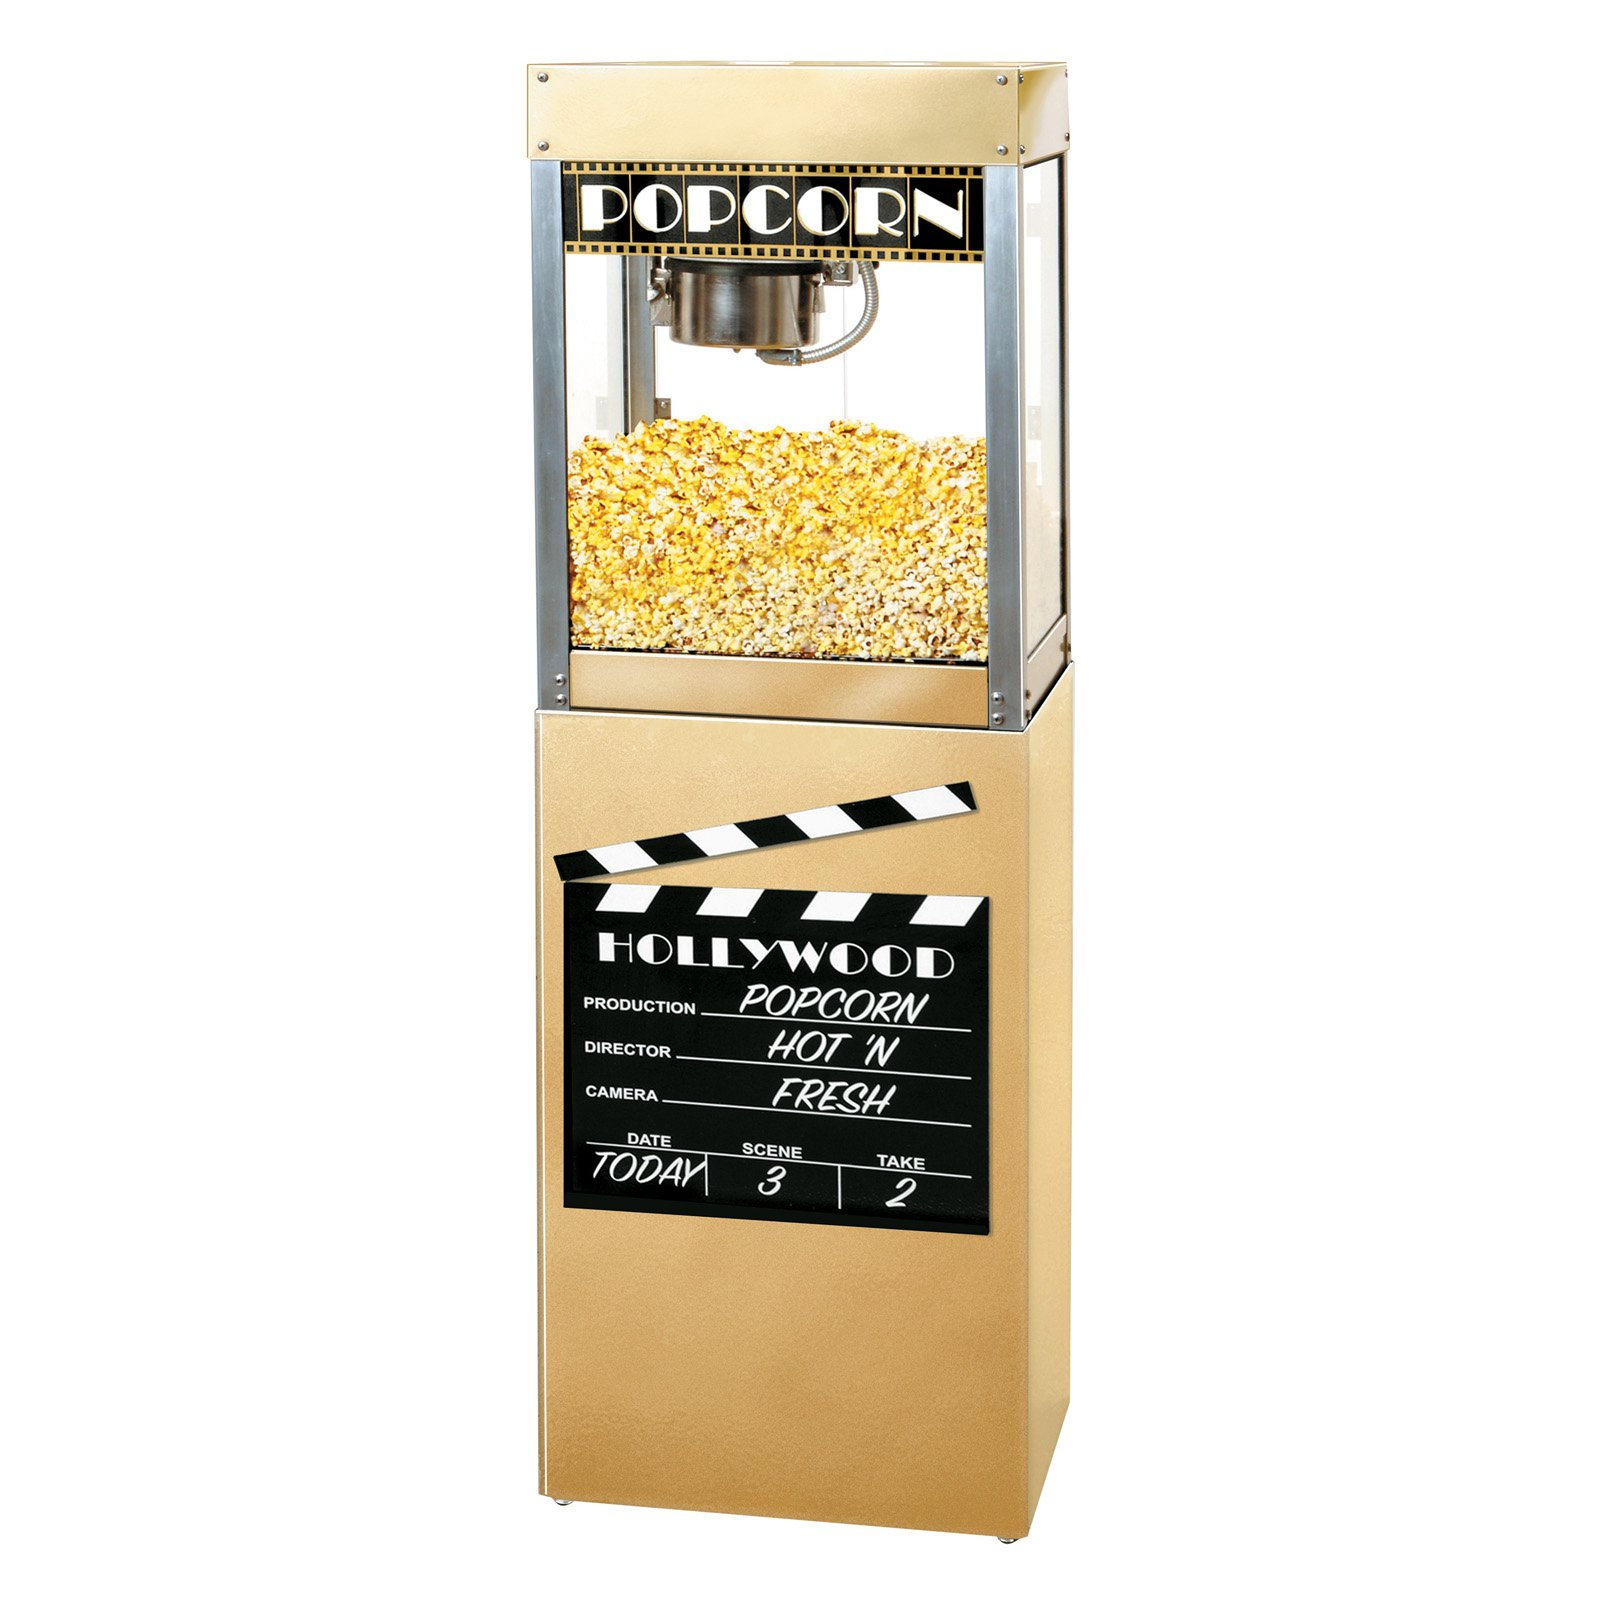 Benchmark USA Premiere Popcorn Popper with Pedestal